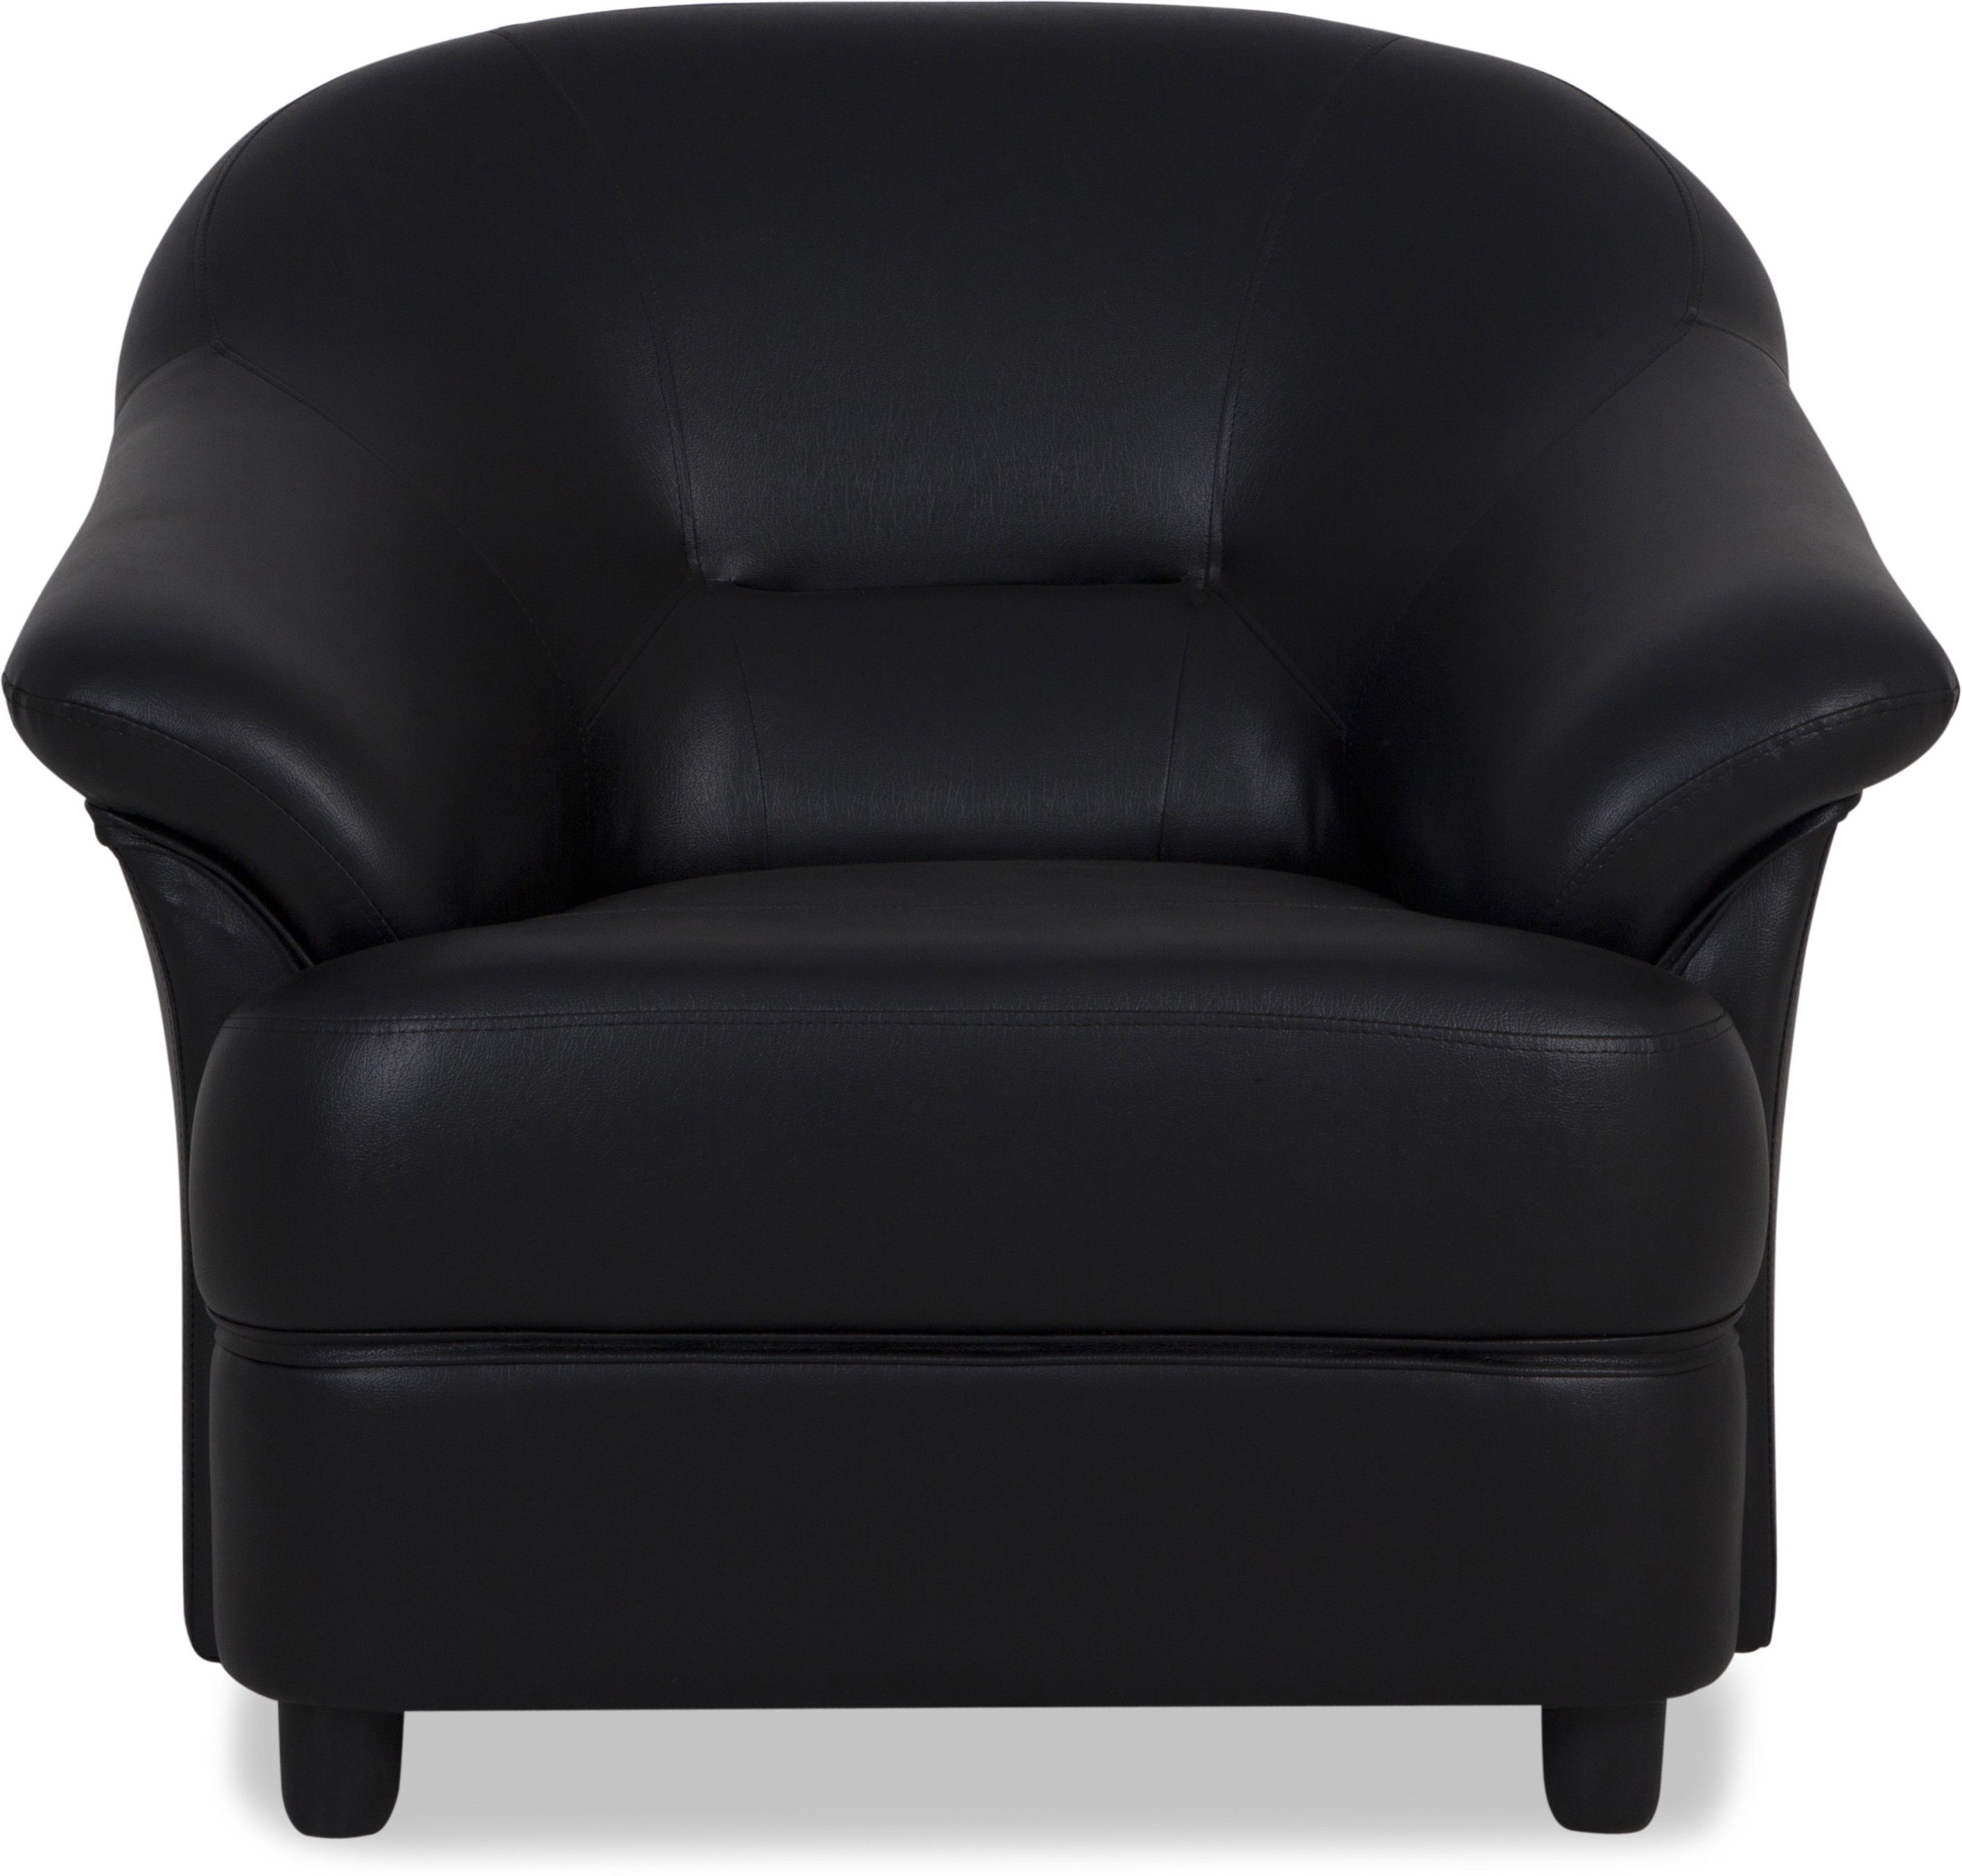 View Urban Living Jennifer Solid Wood 1 Seater Standard(Finish Color - Black) Furniture (Urban Living)